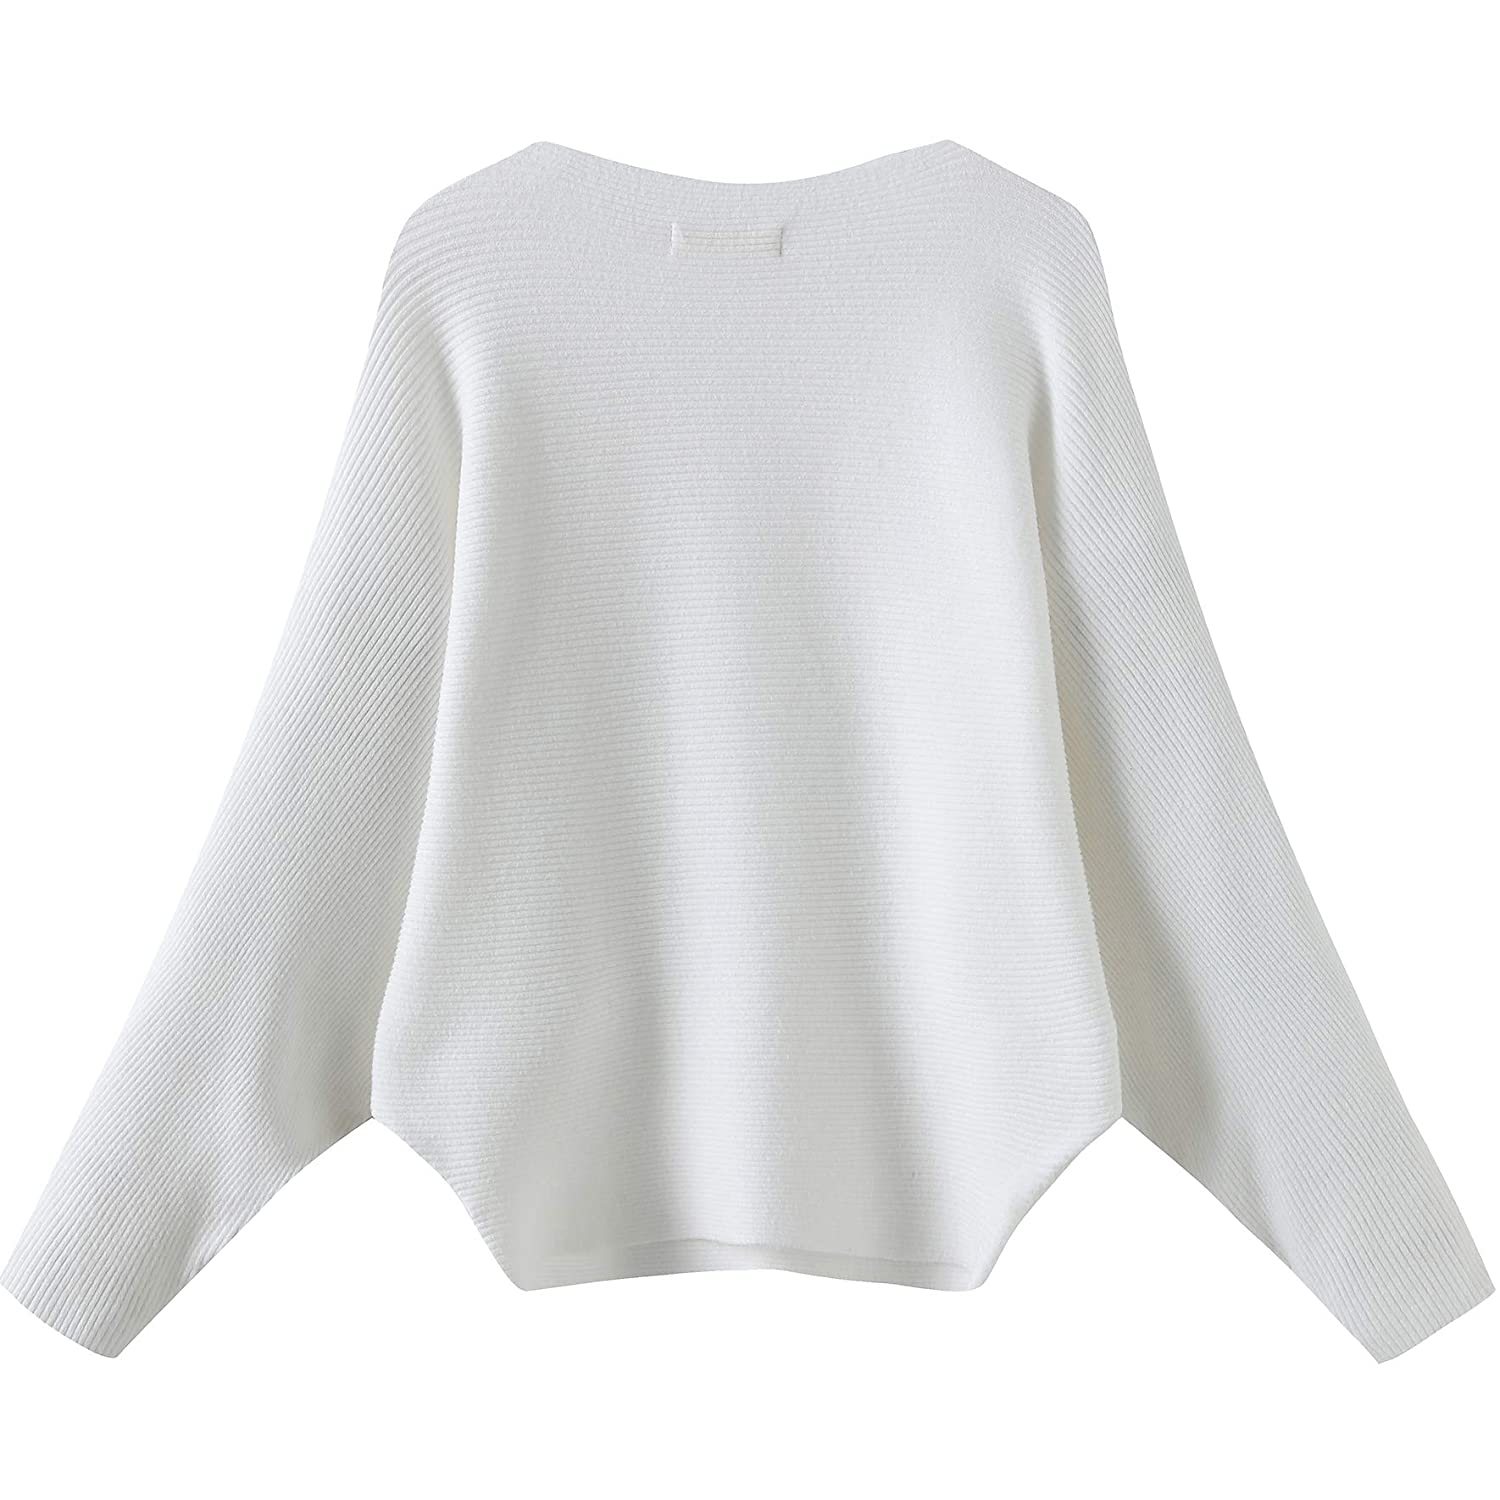 Naturally99 Women s Light Weight Long Dolman Sleeve Batwing Premium Wool  Sweater Knit Top (White) at Amazon Women s Clothing store  5ce8c93548